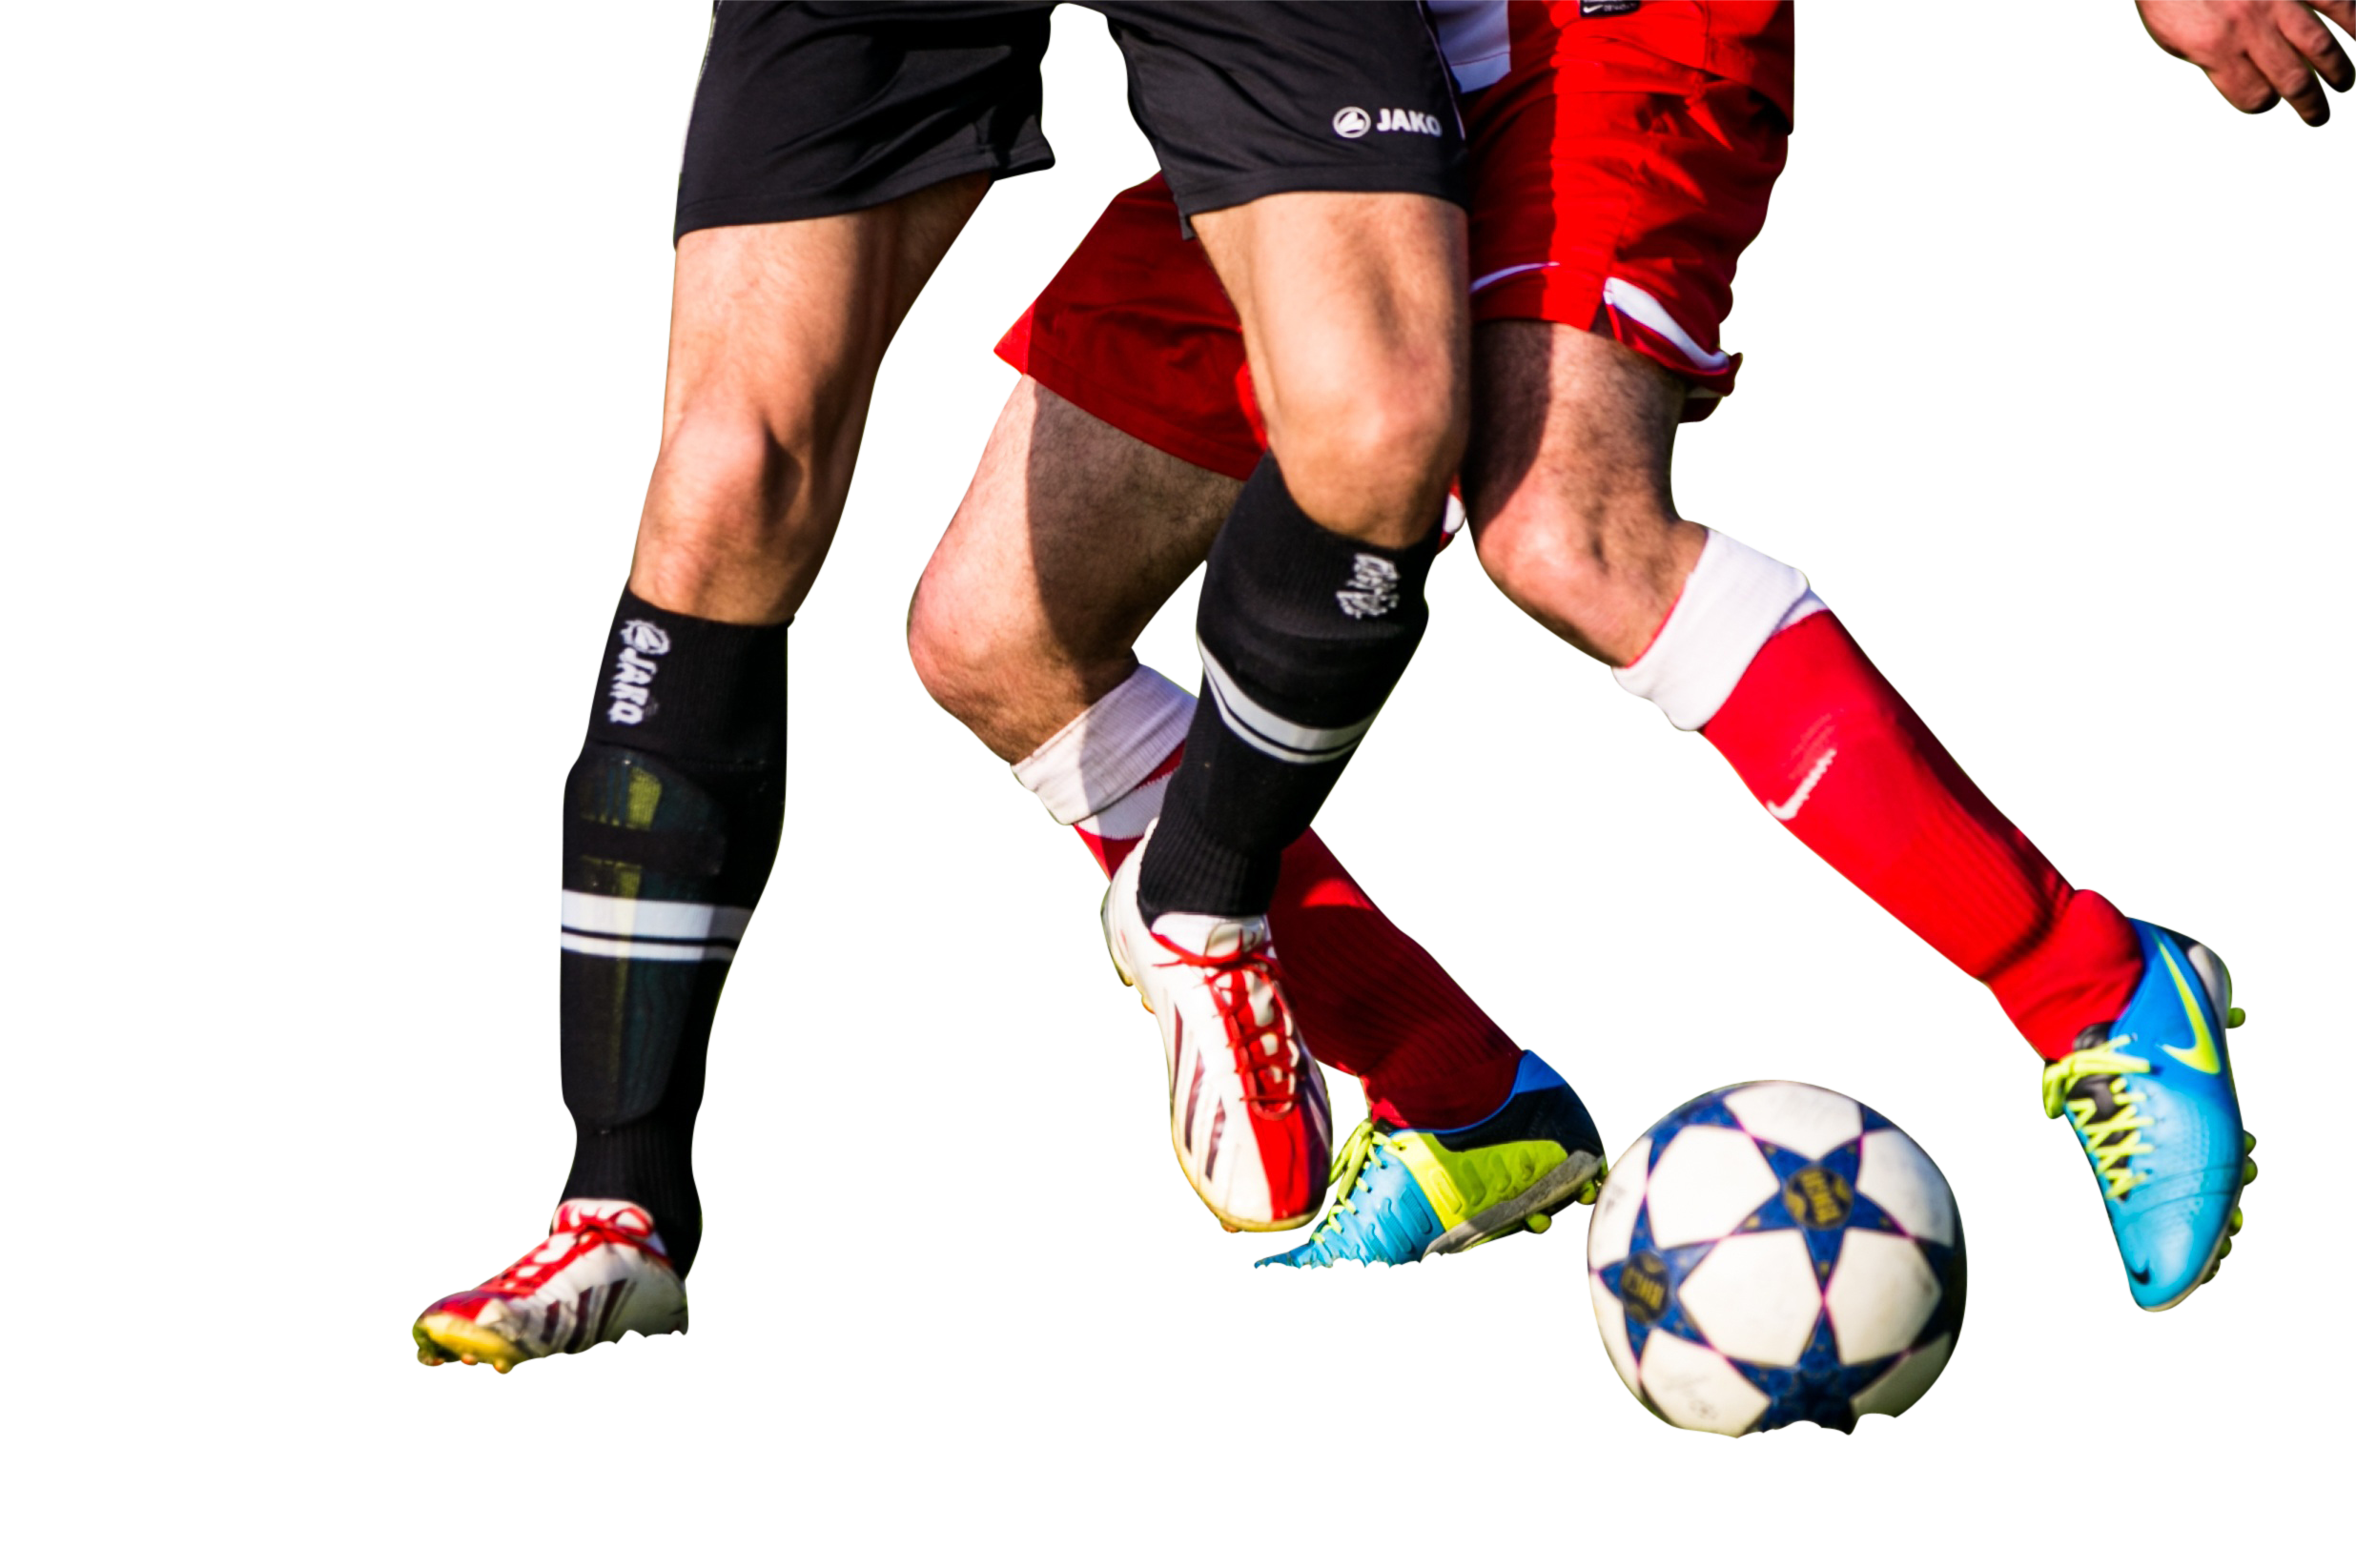 6168492f6a015_football_player_PNG131.png